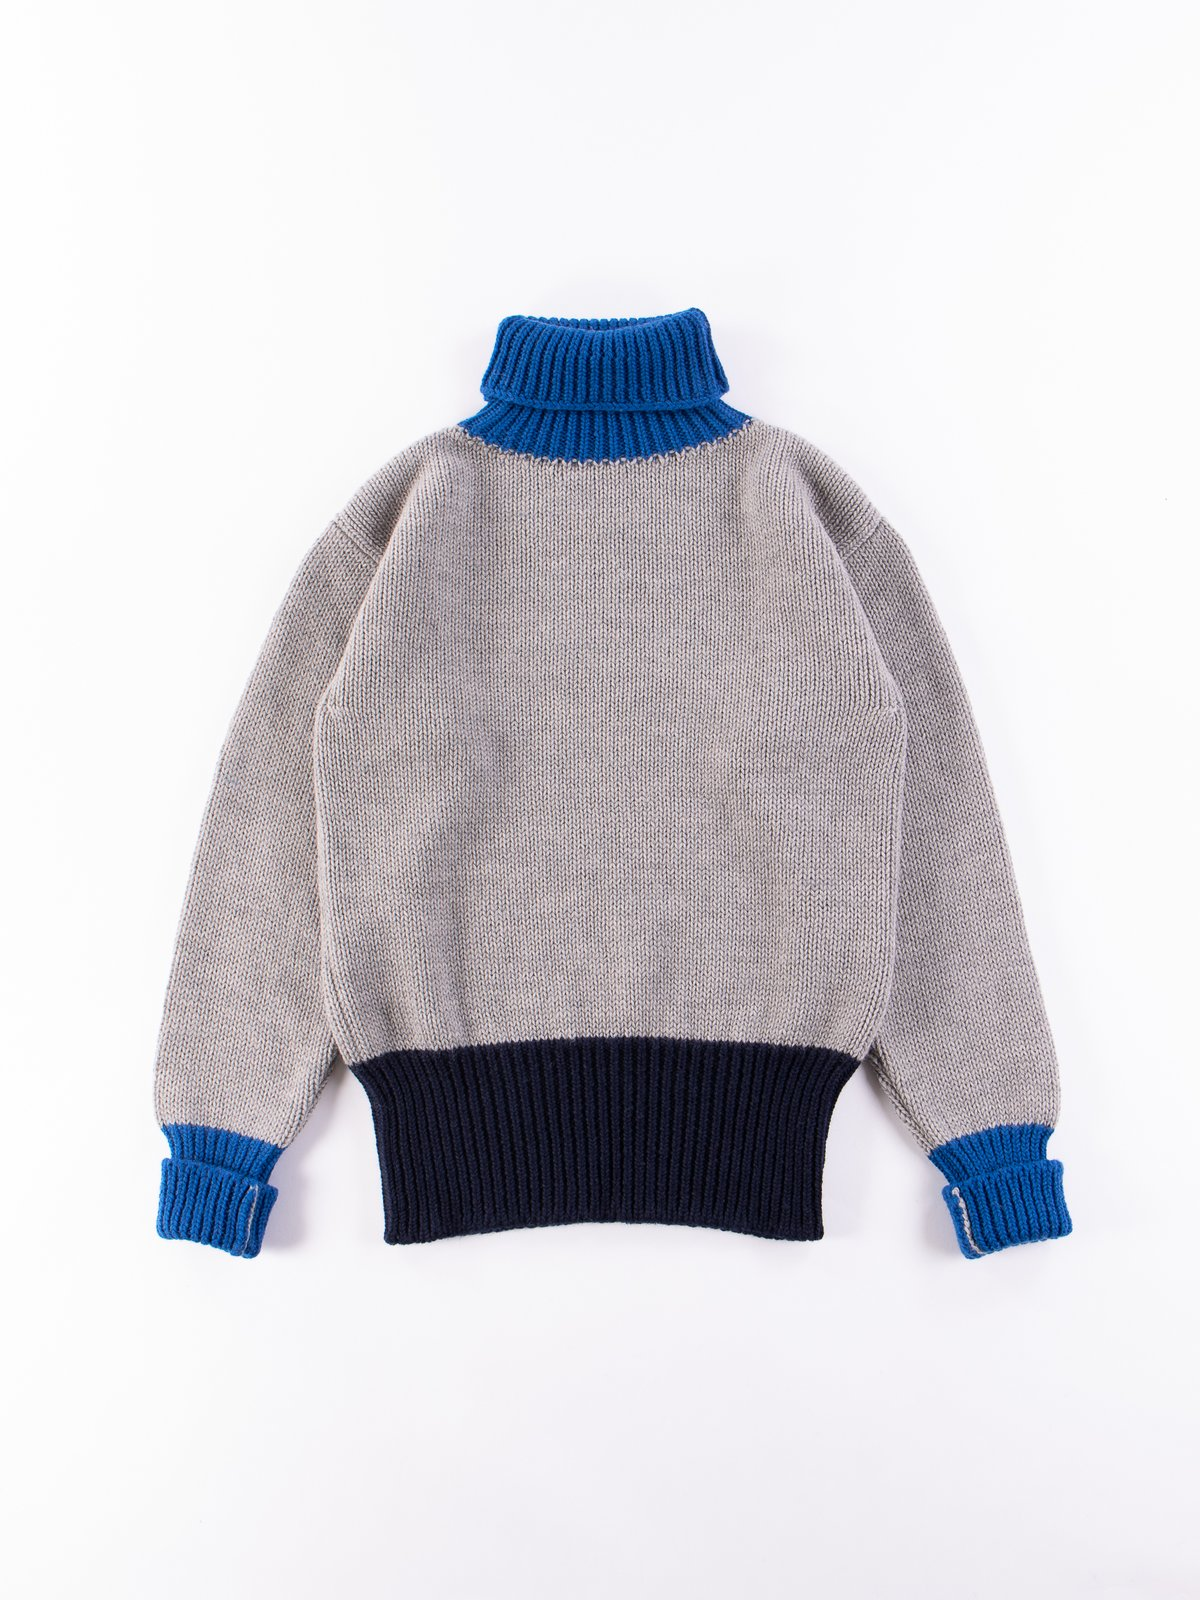 Grey/Navy/Blue George Lowe Roll Neck - Image 1